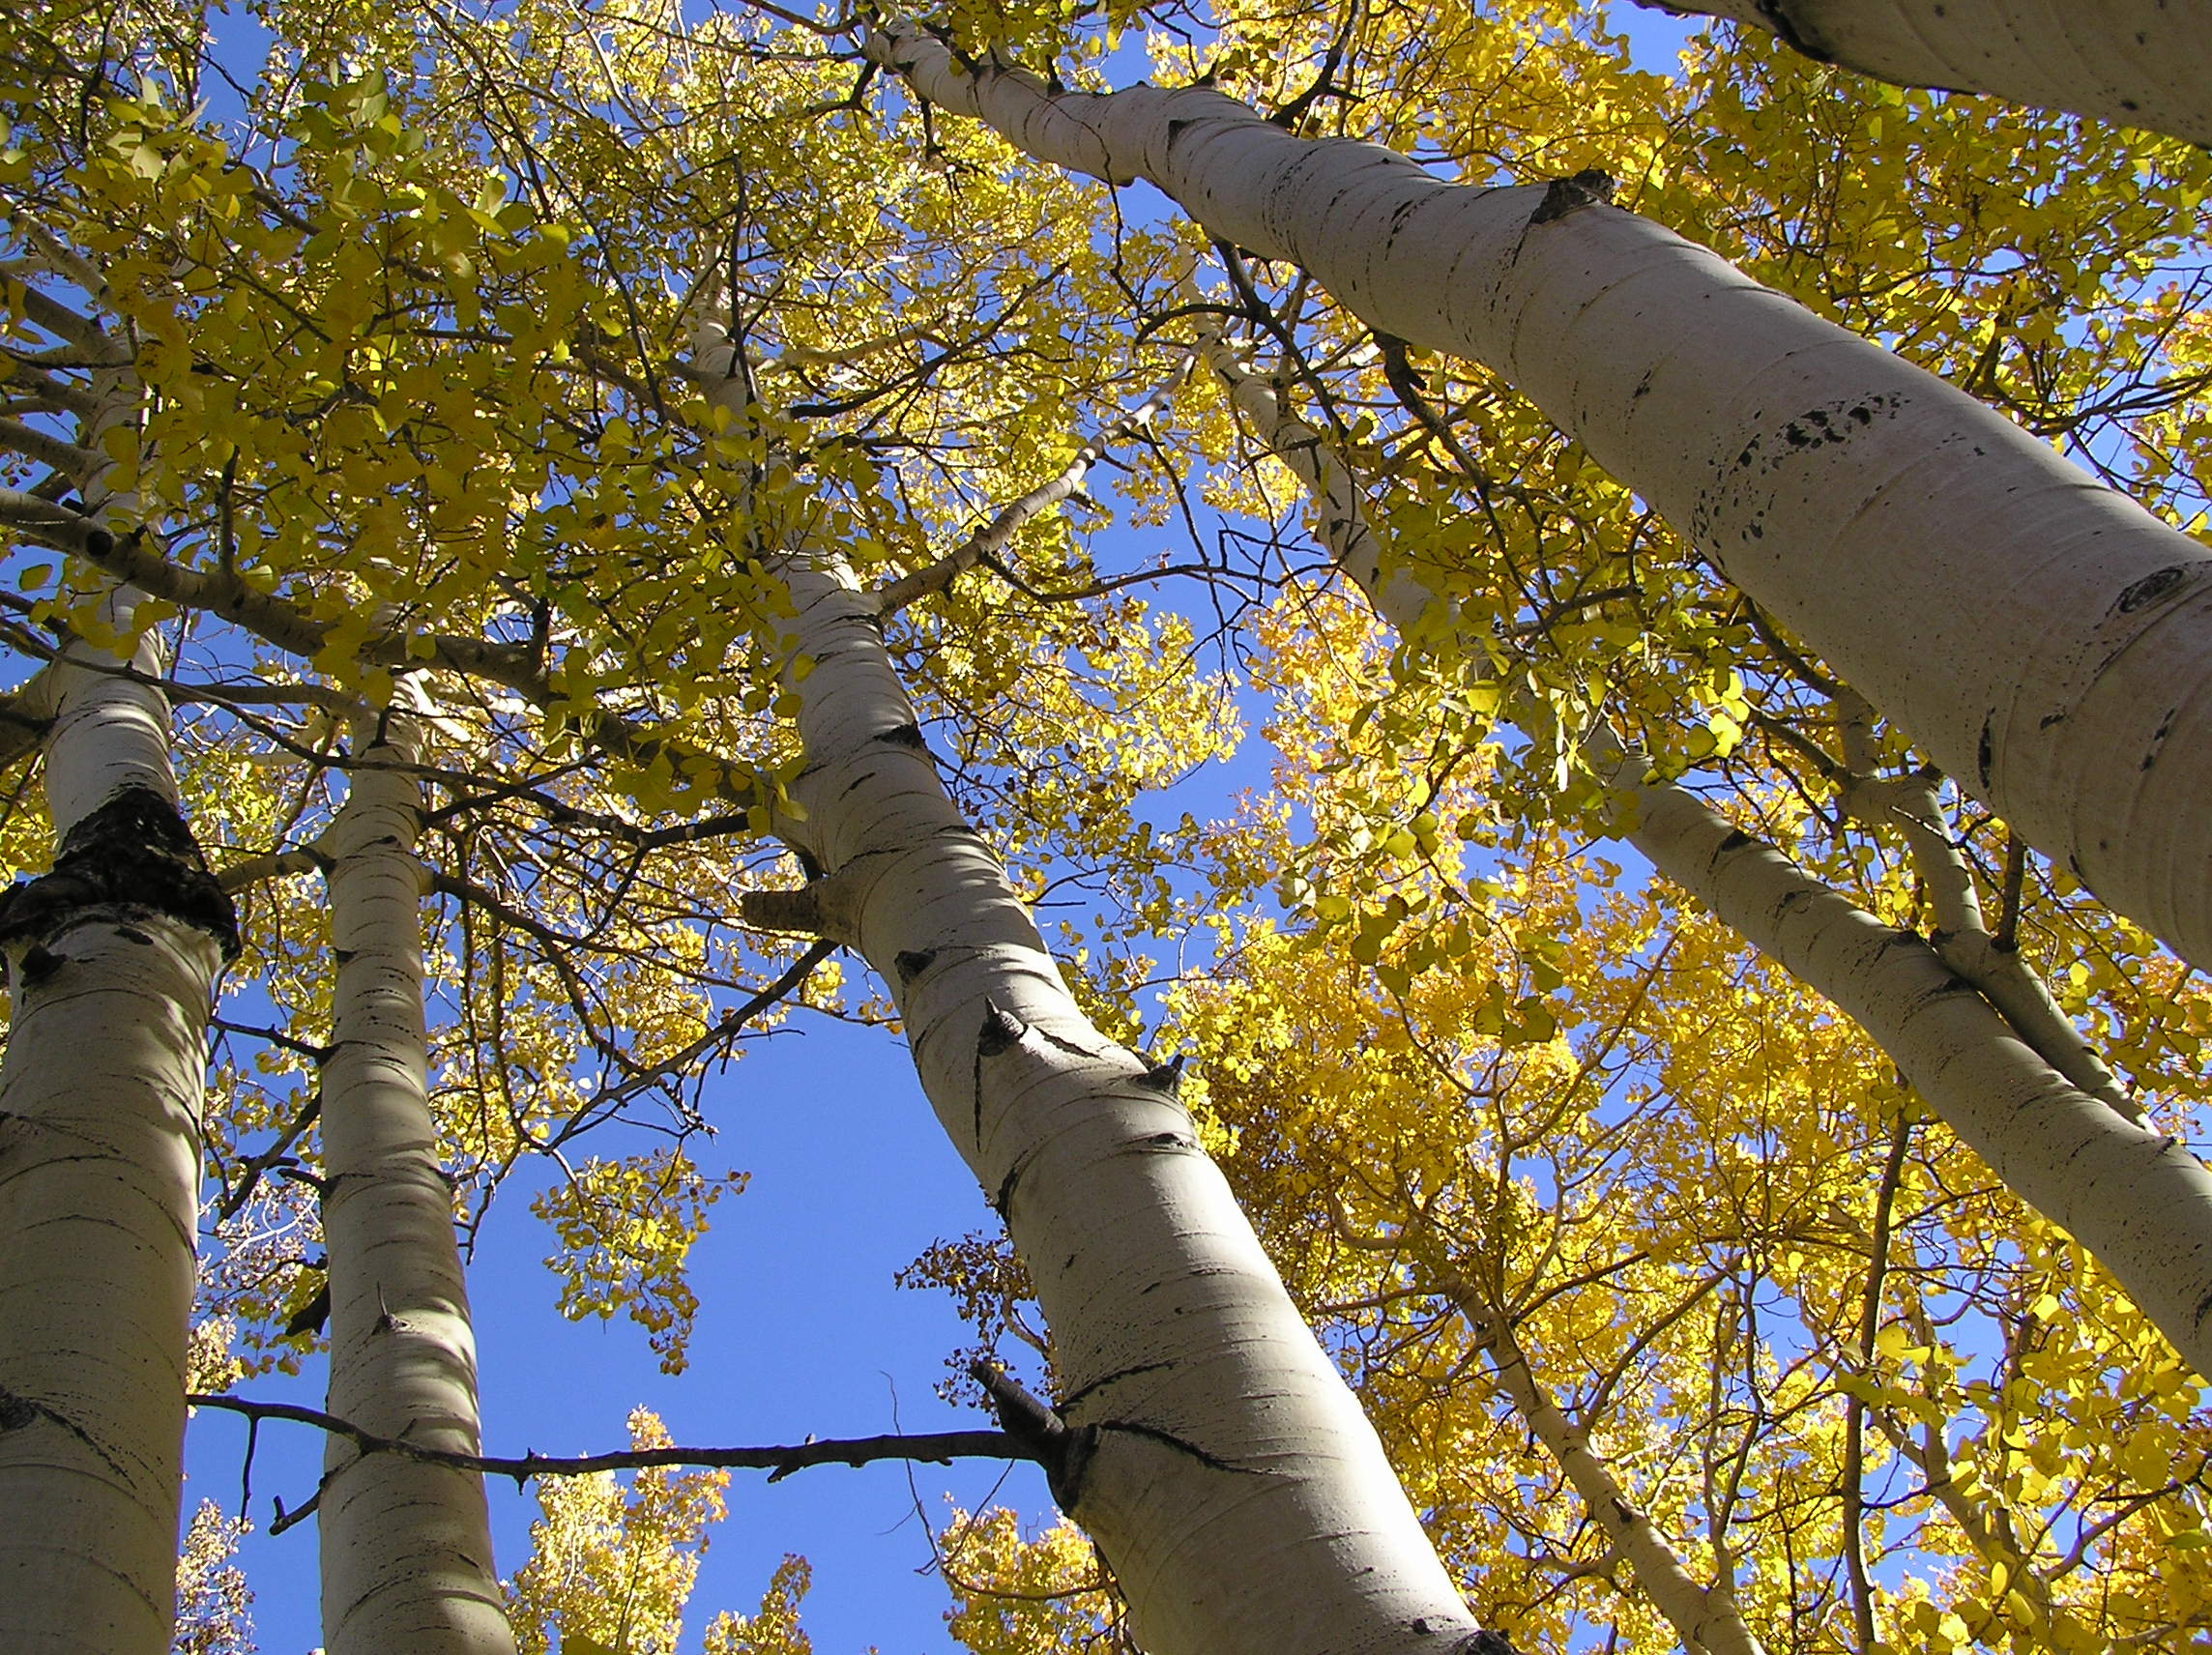 A trunk or stem of Pando a quaking aspen tree.